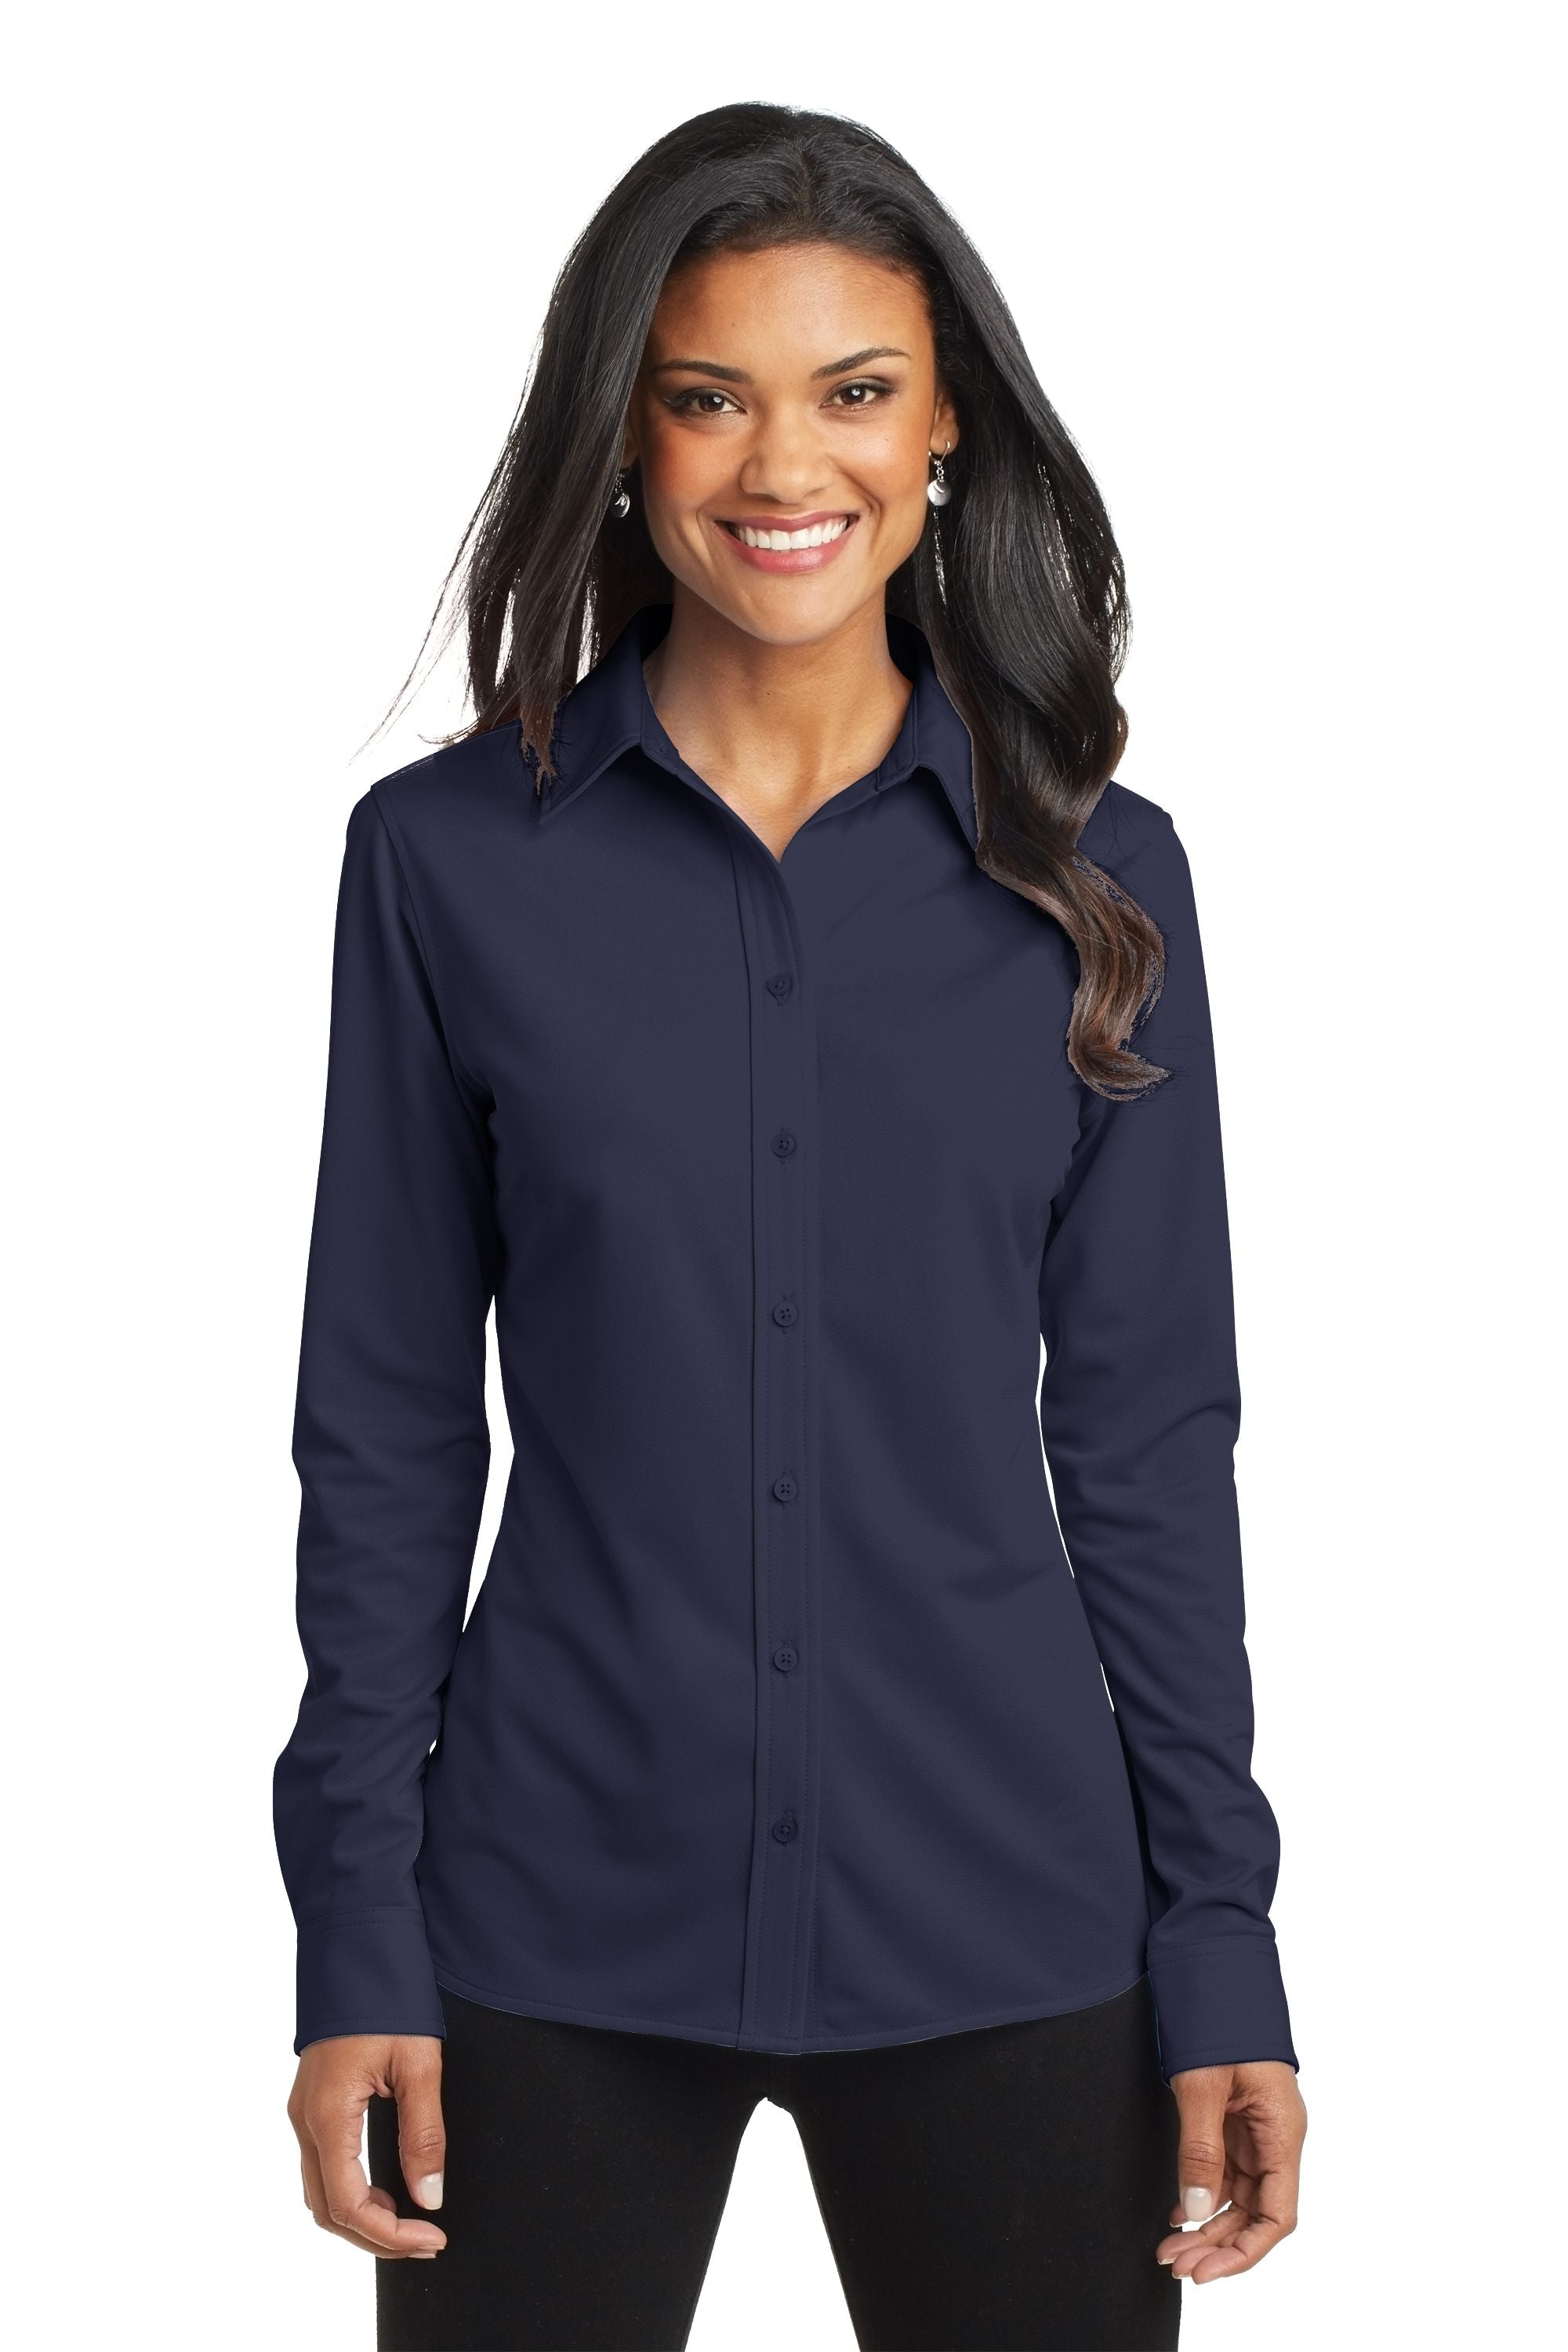 Port Authority® Ladies Dimension Knit Dress Shirt